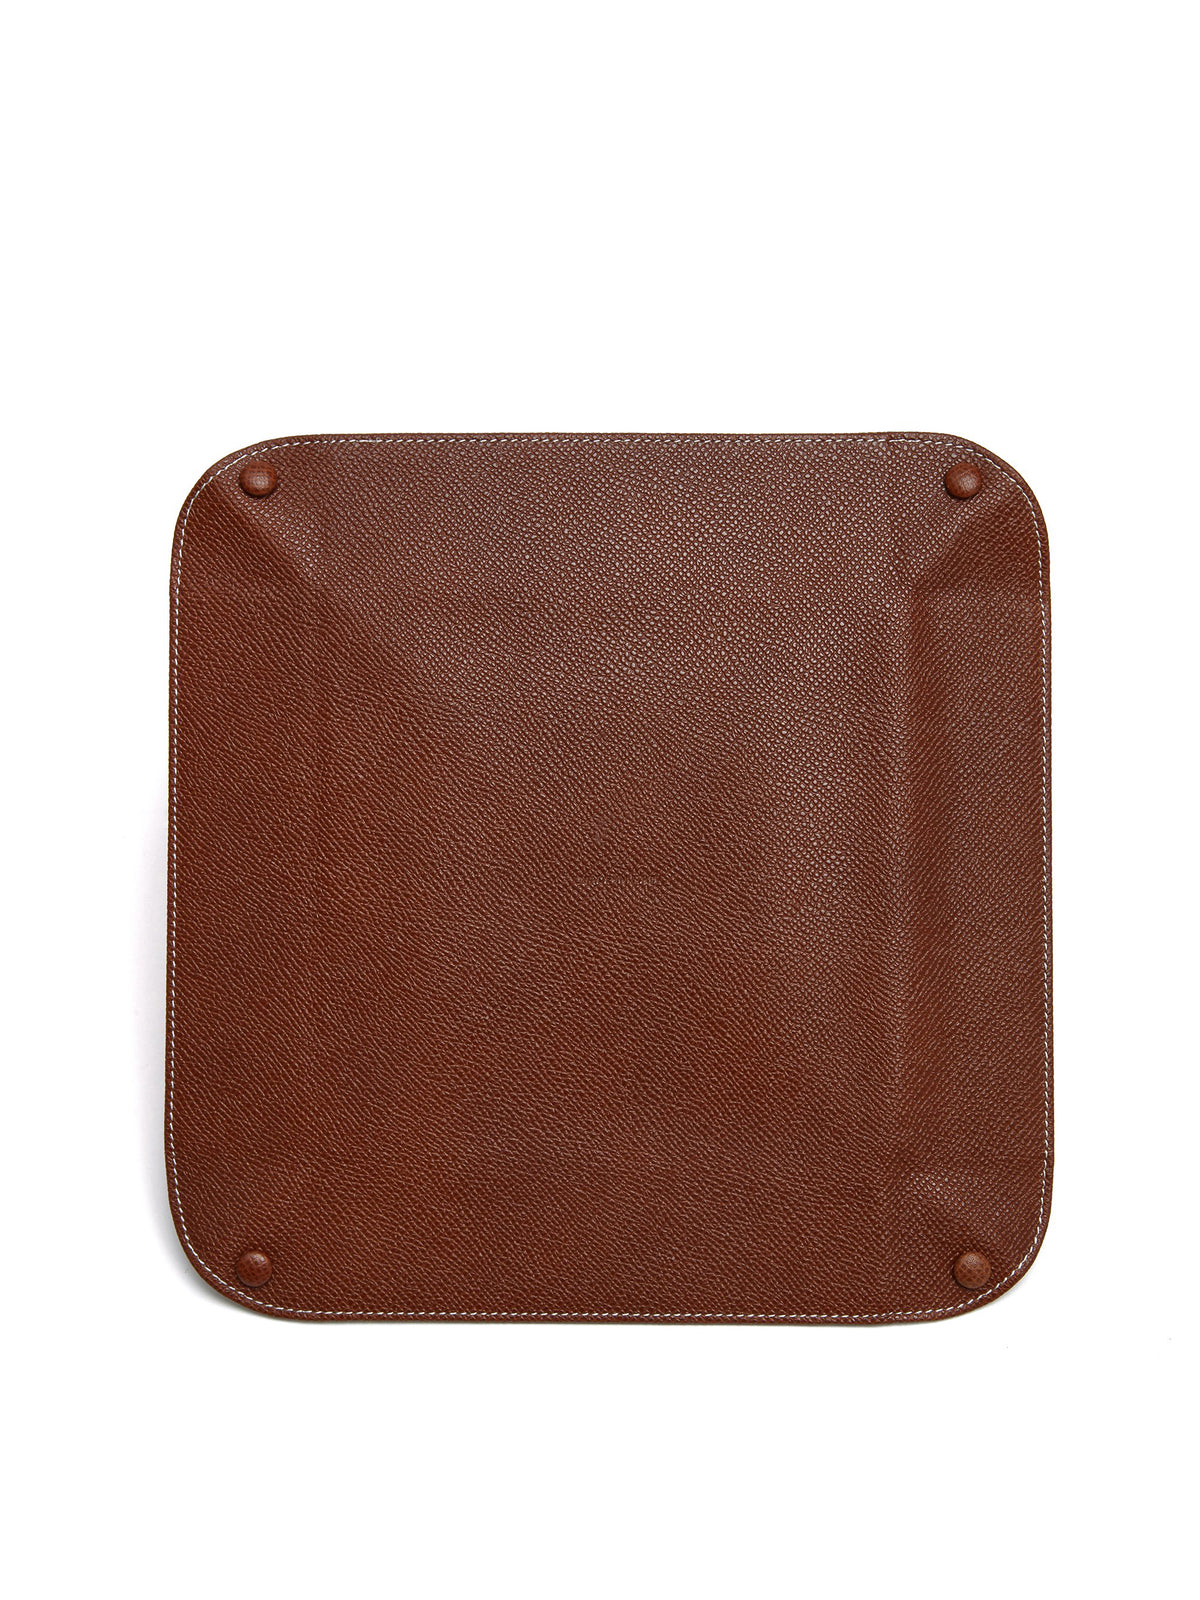 Mark Cross Large Leather Valet Tray Saffiano Acorn Back